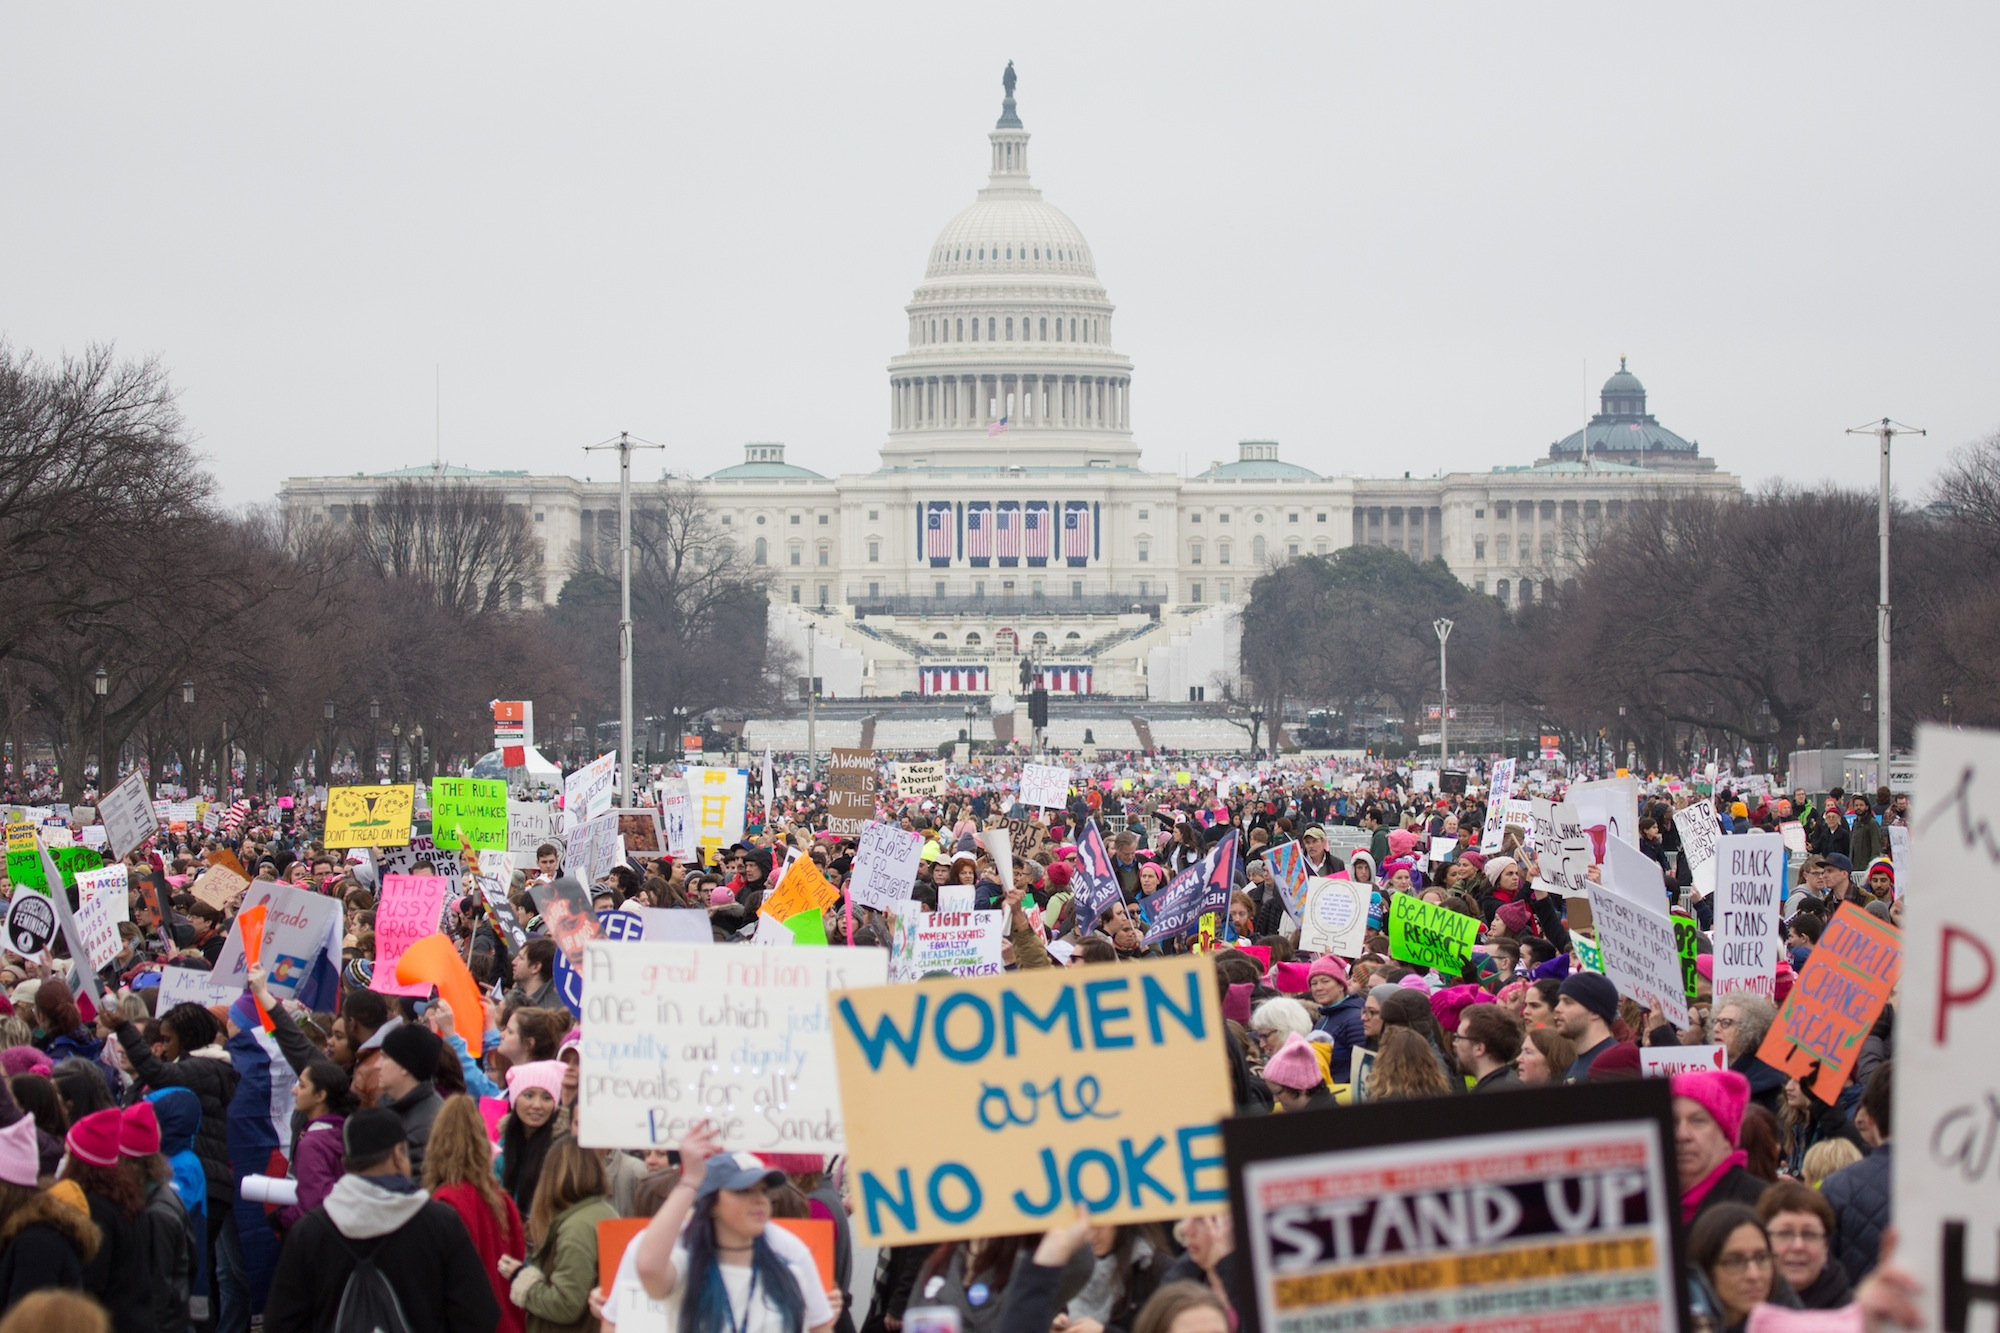 The Anti-Inauguration: Scenes from the Massive Women's March on Washington - VICE